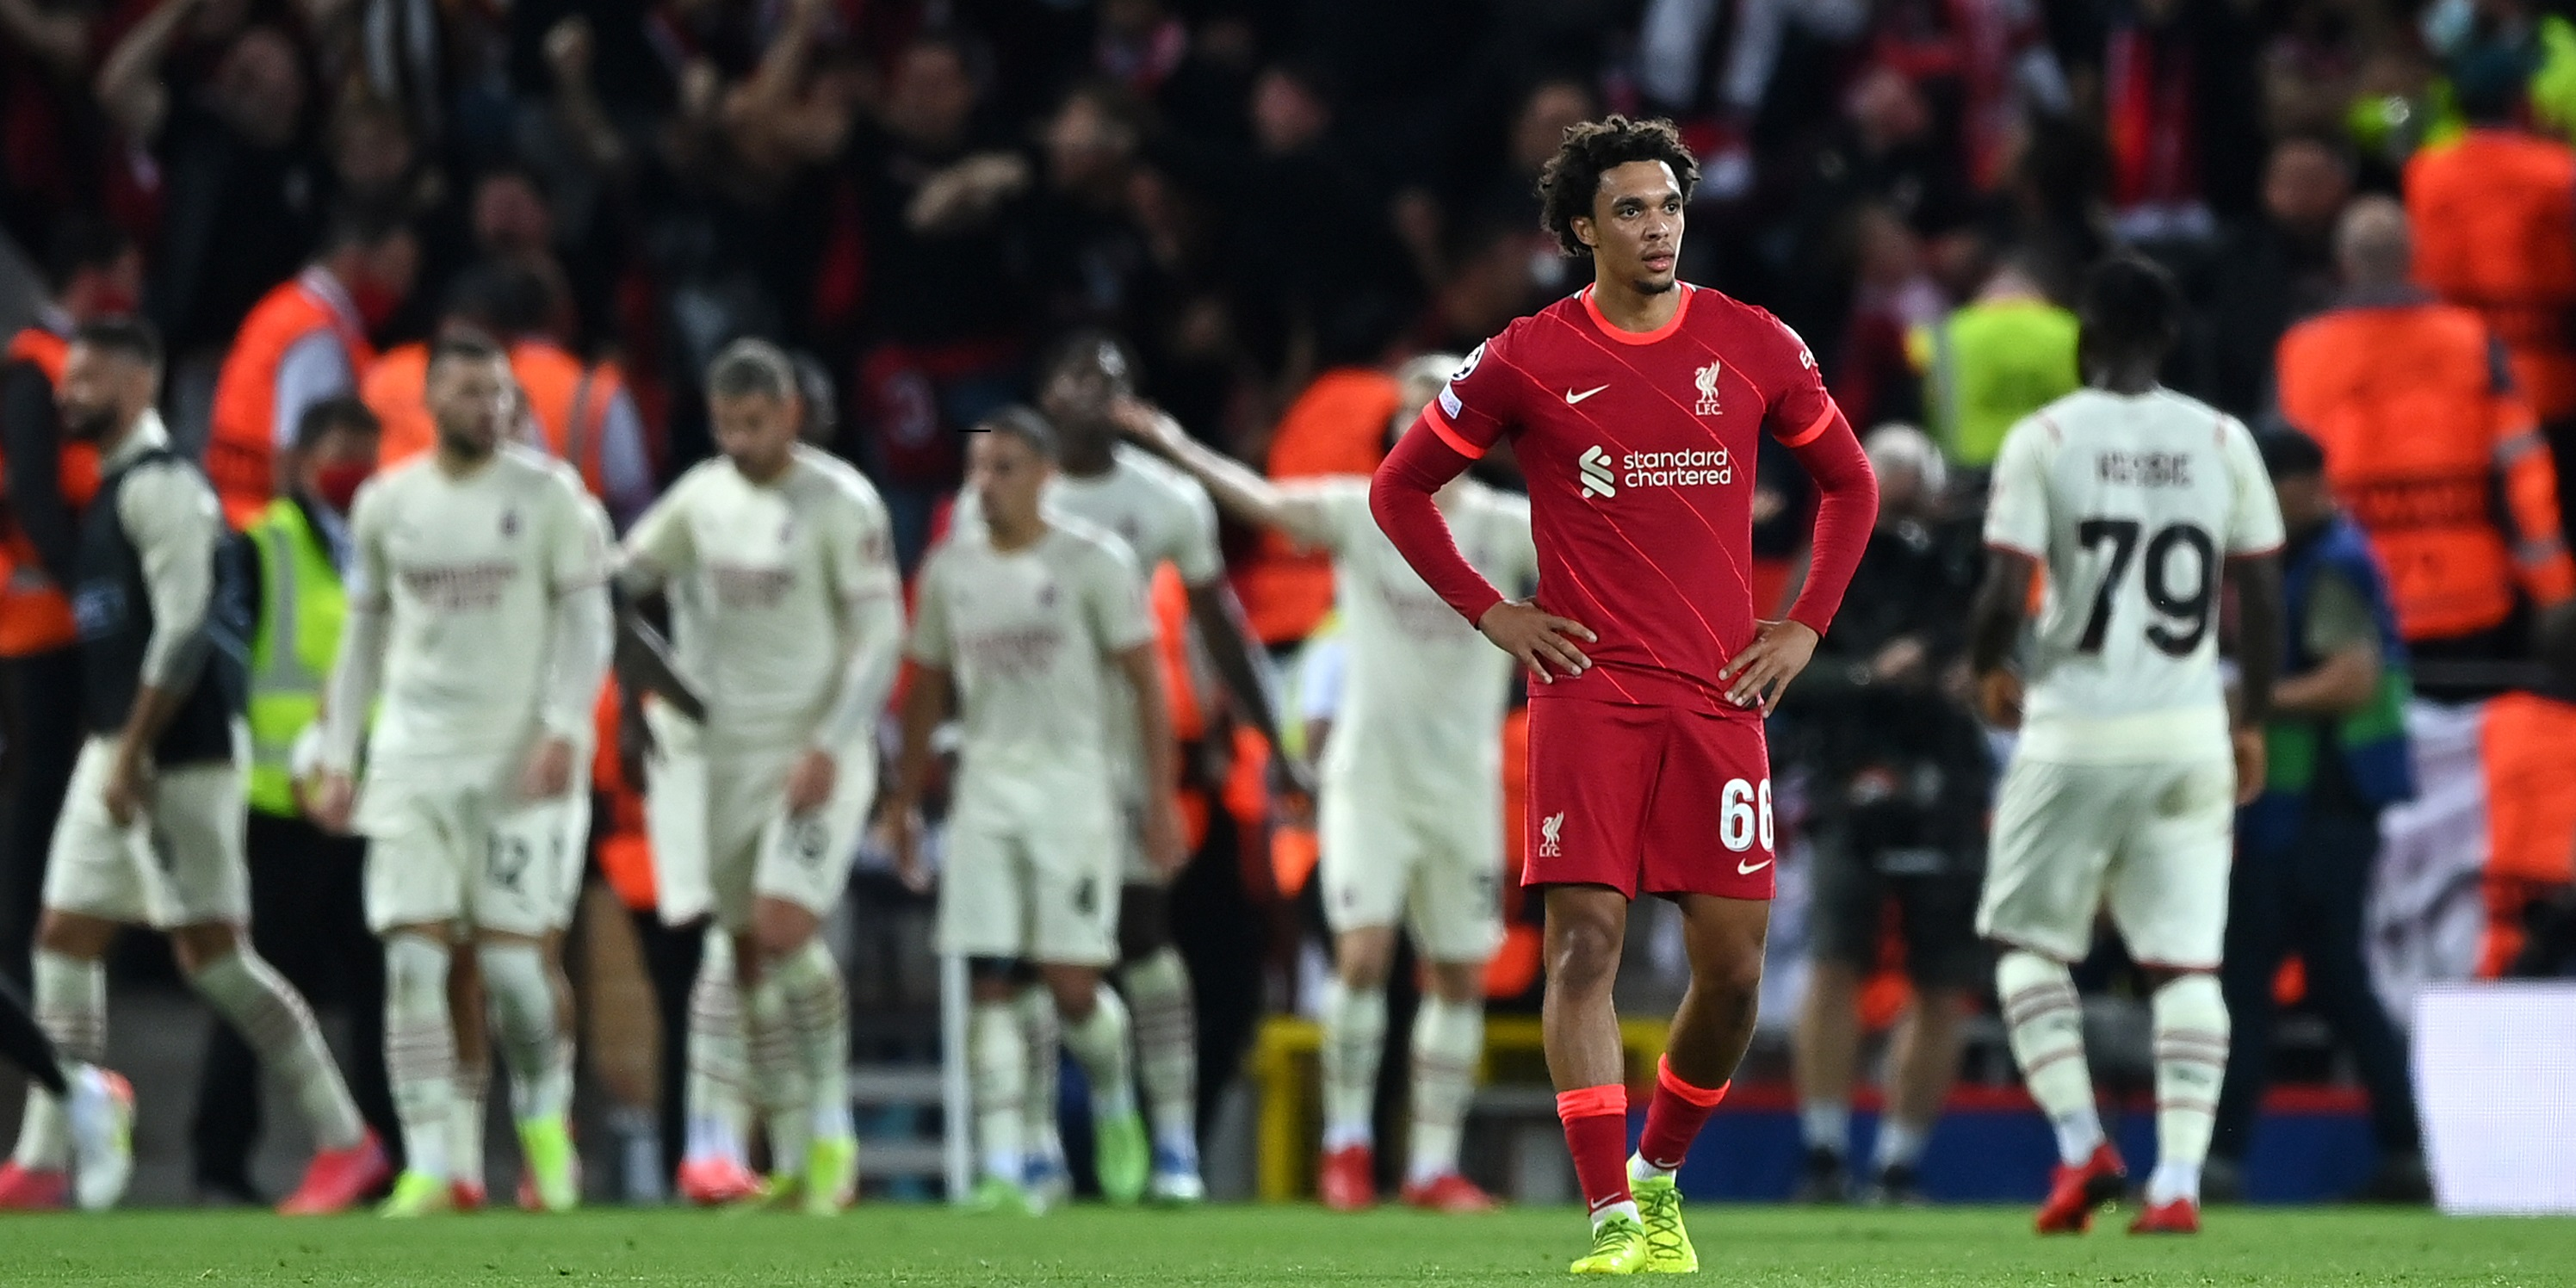 Liverpool fans will laugh when they hear which key star Real Madrid are reportedly interested in